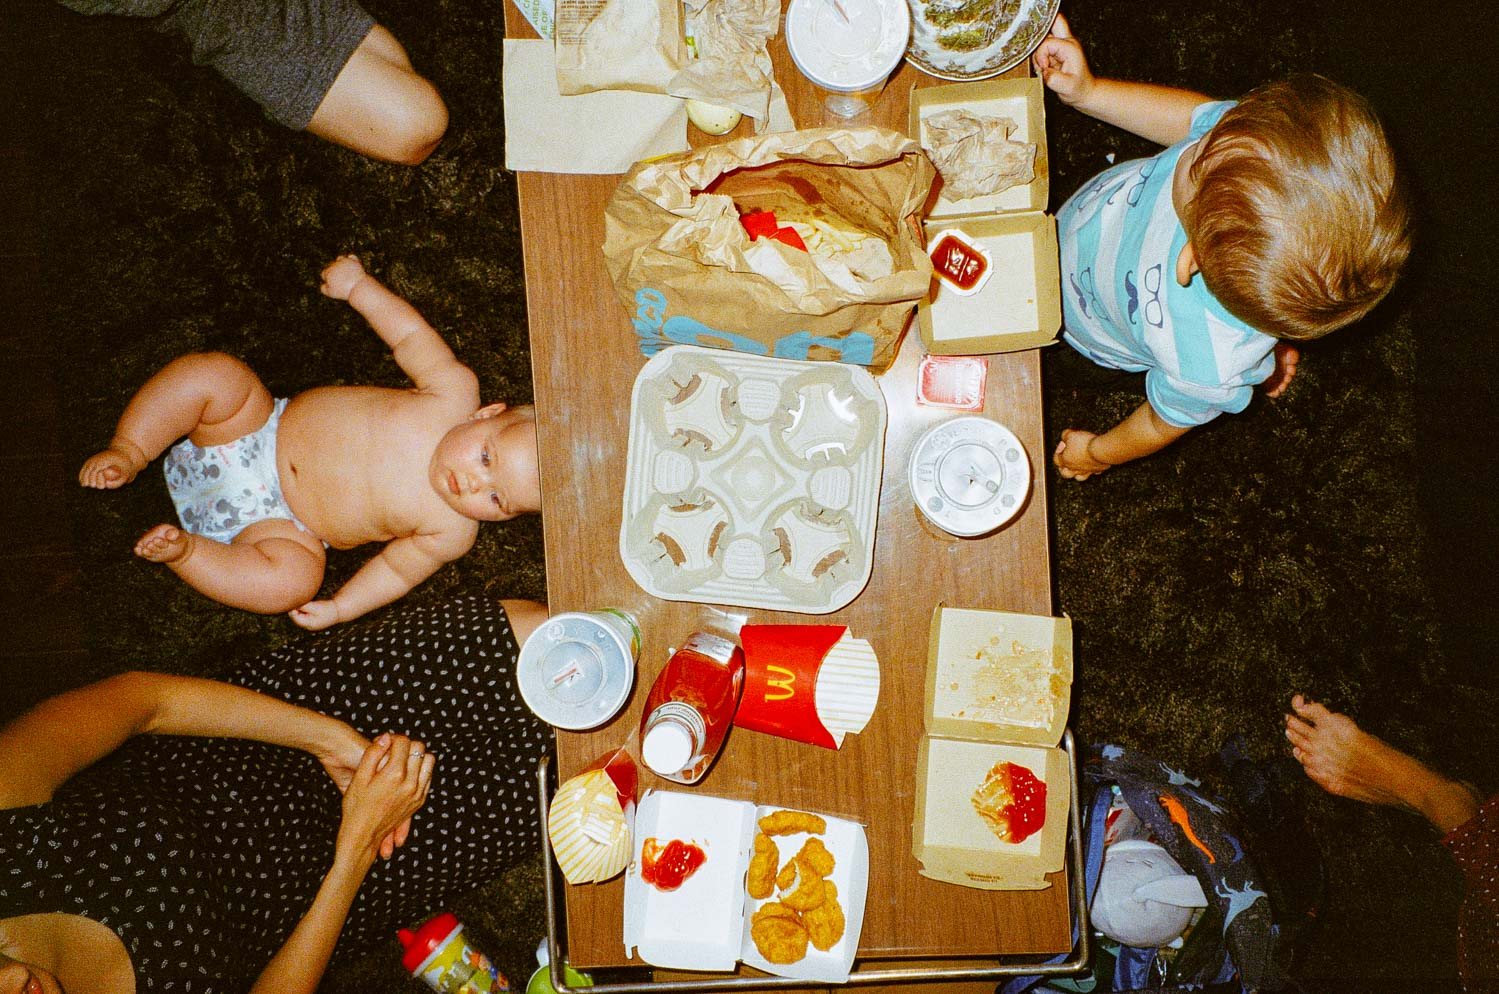 kids eating mcdonalds.jpg